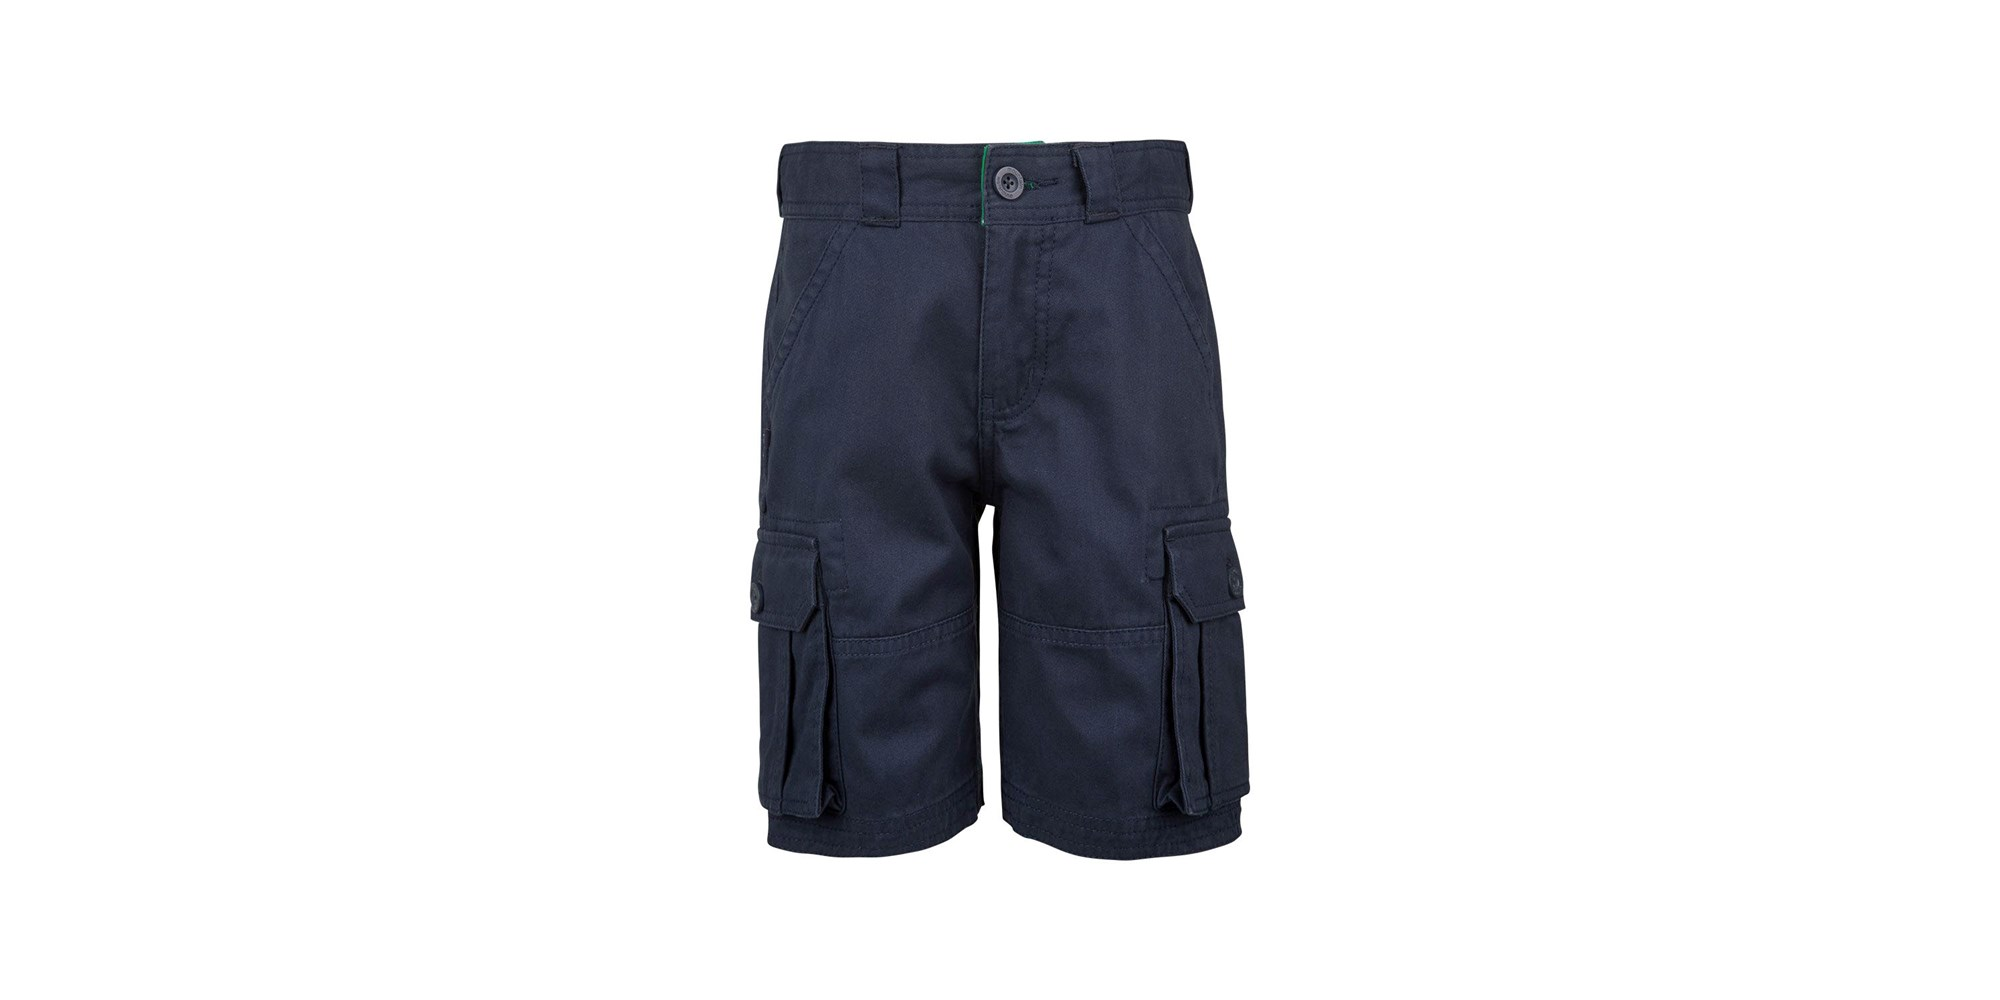 About Kids' Shorts for Boys and Girls: Shorts give kids the range of motion they need to be themselves. No child left behind really should mean that no child is left standing on the side of the playground because their parents make them wear really constrictive khakis.